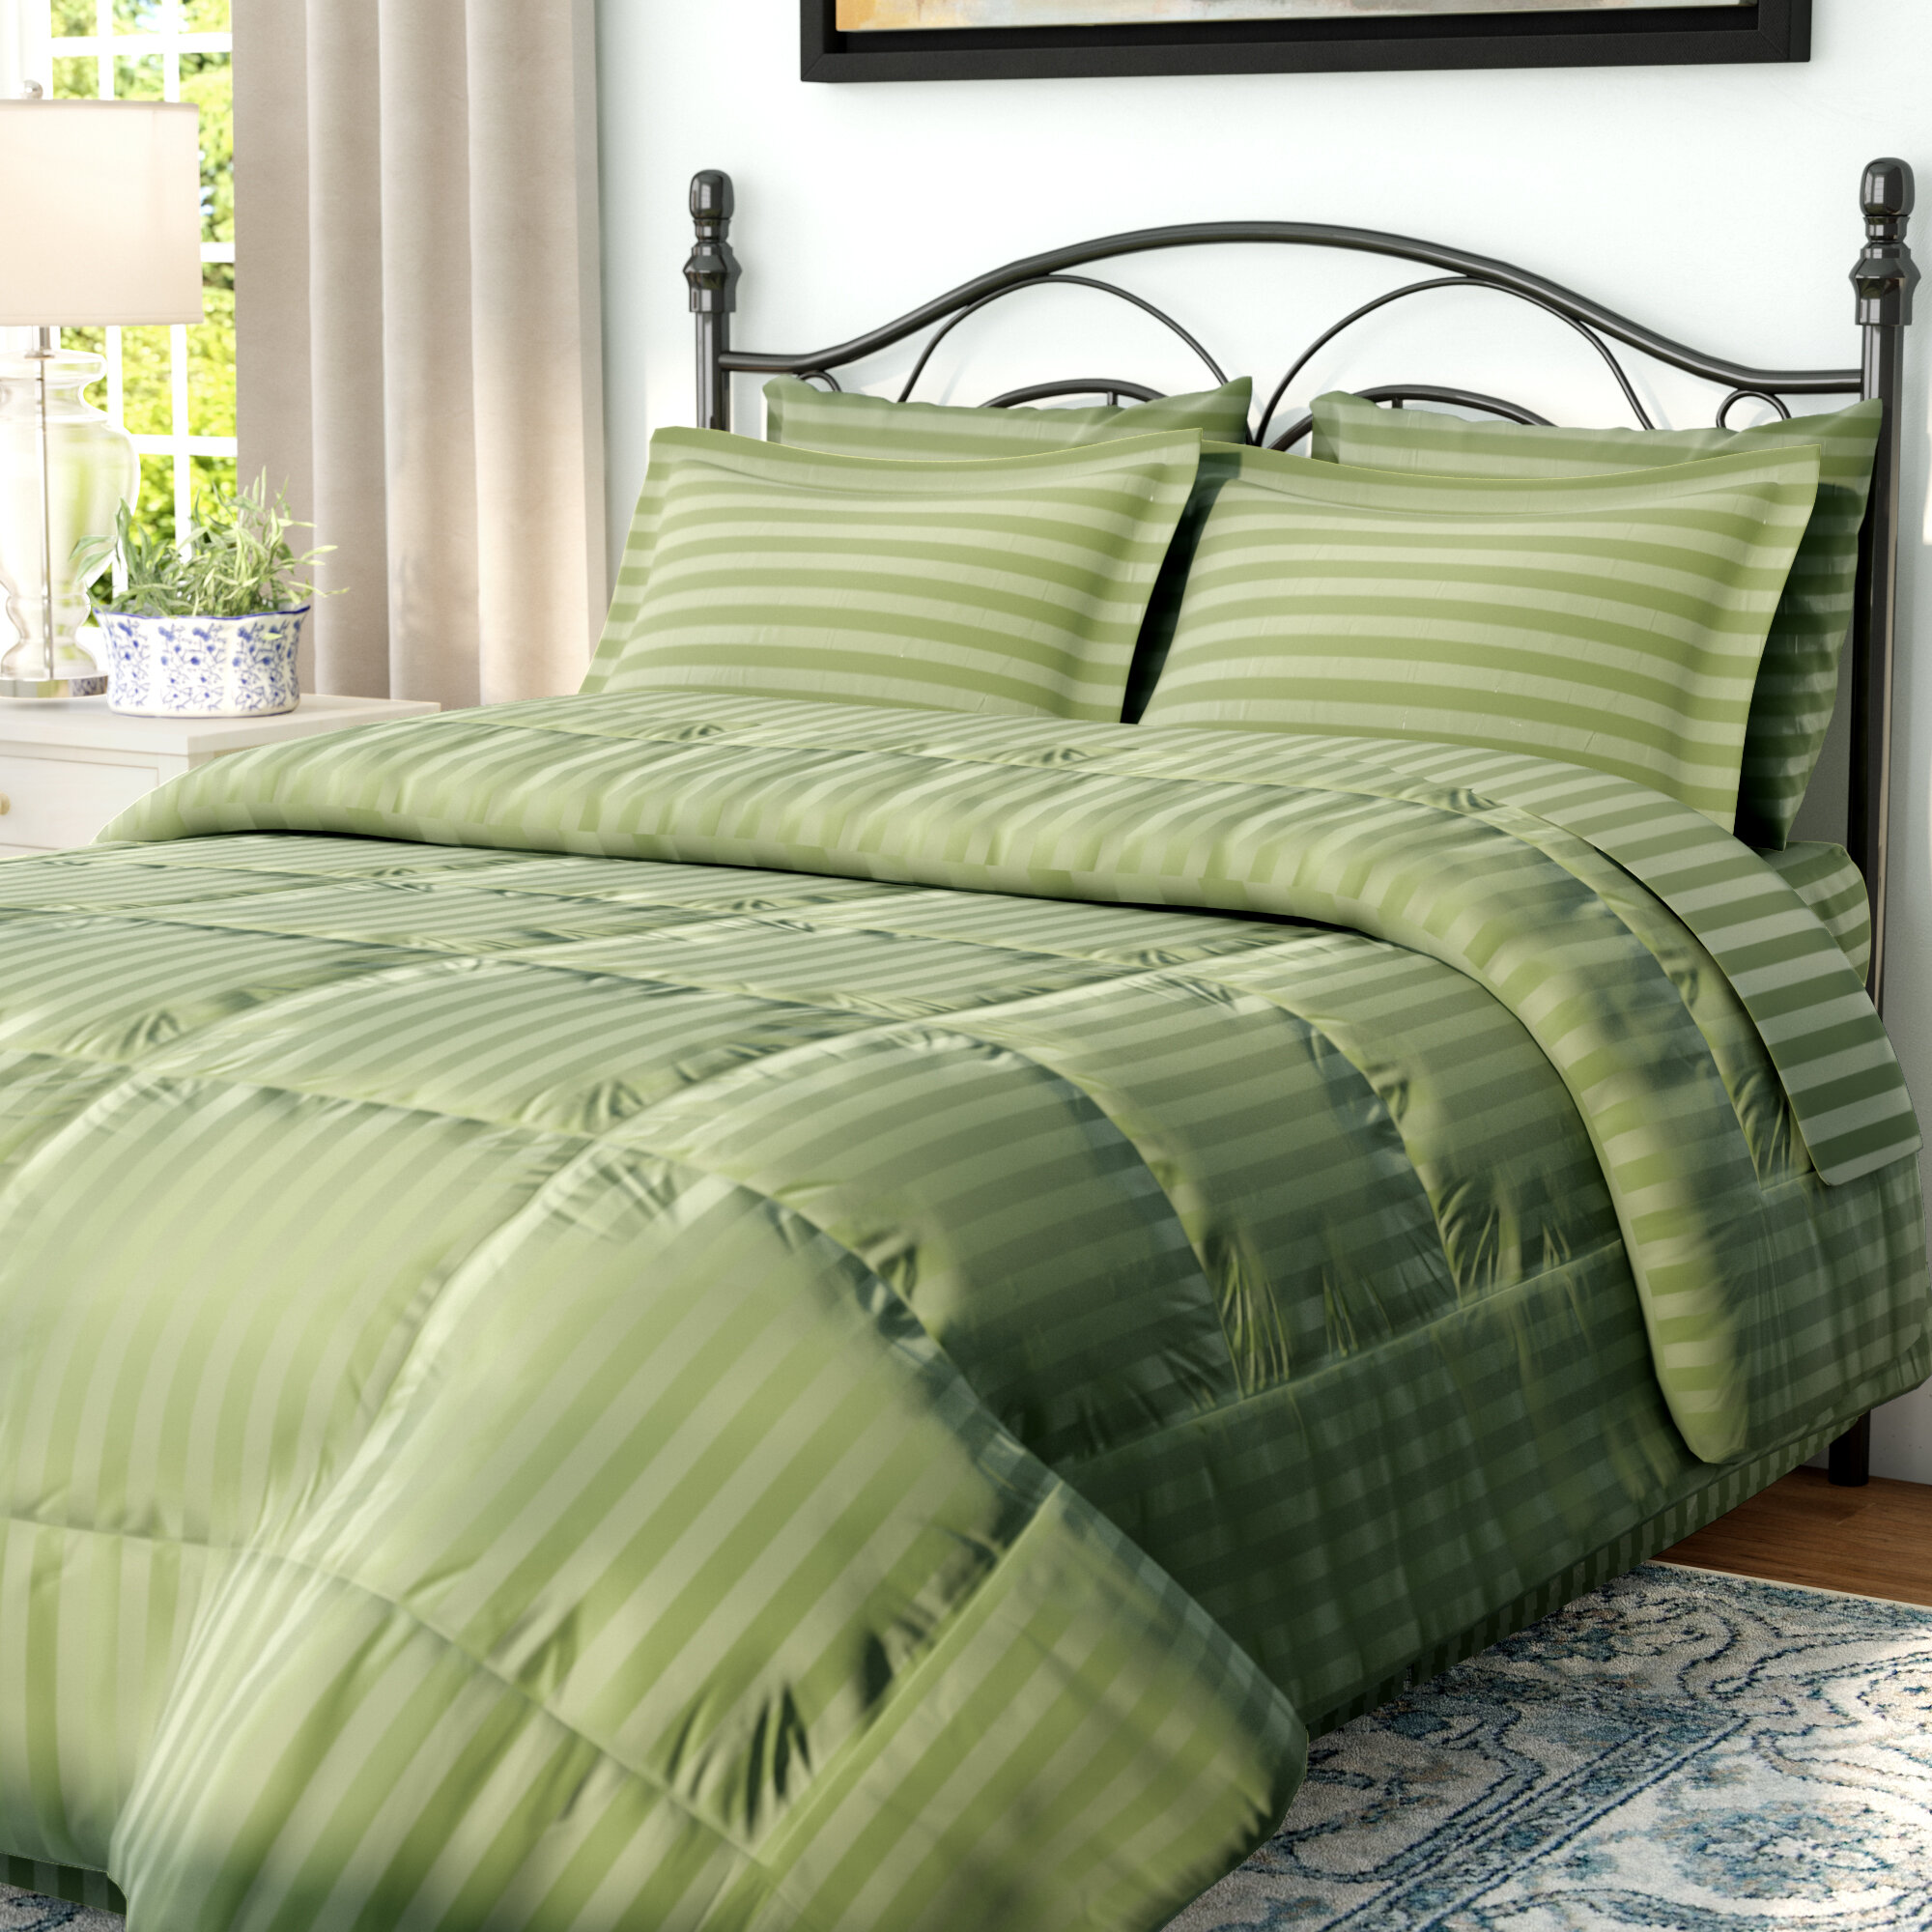 of comforter modern class touch sets quilt tuscan italian croscill full king bedding green bedspreads